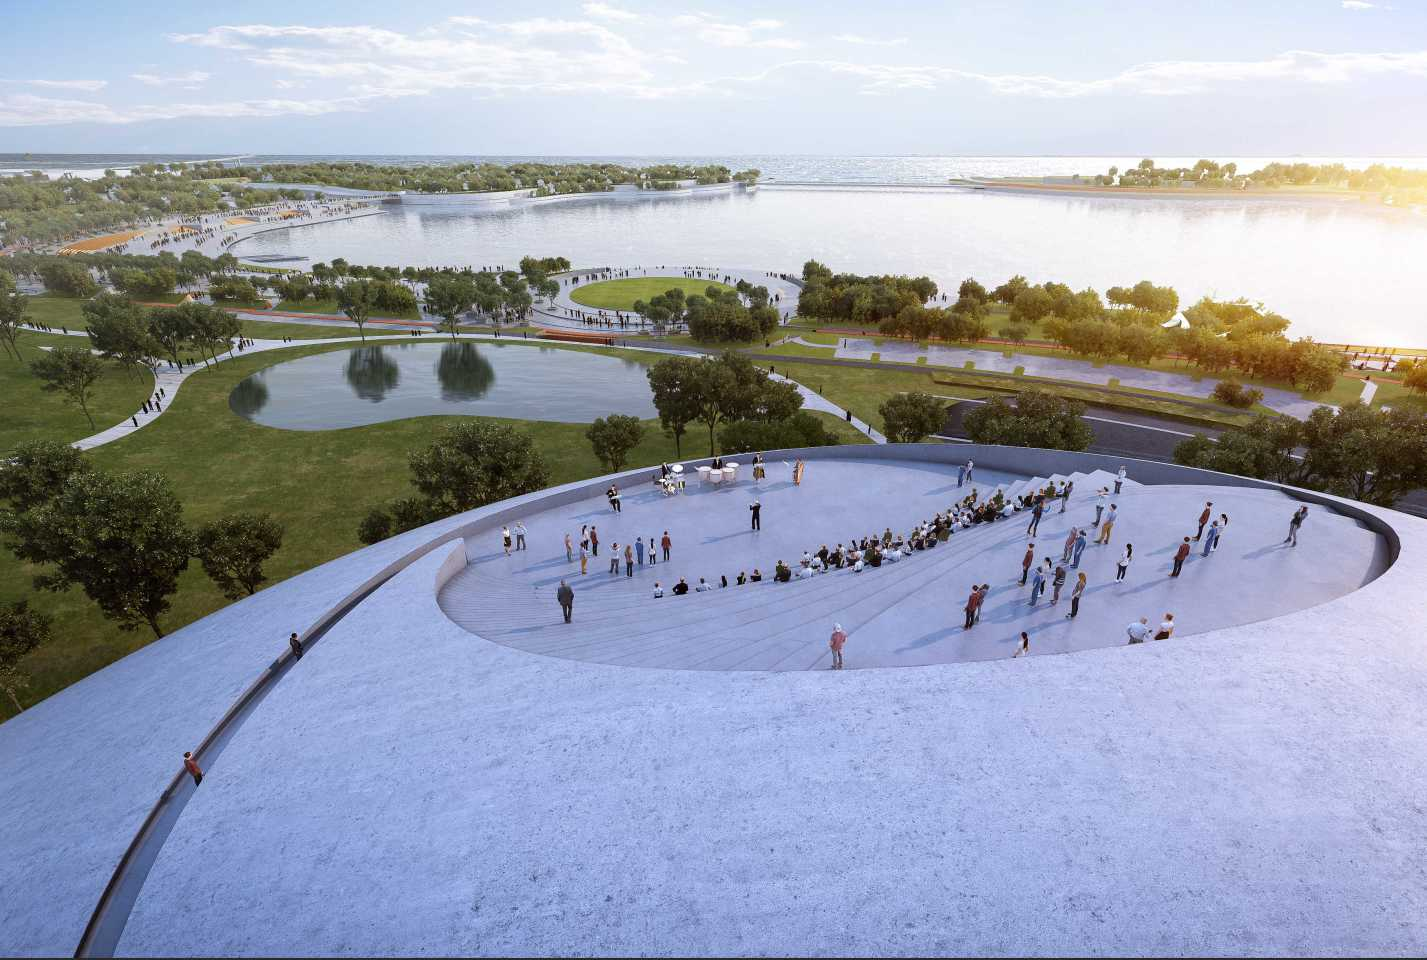 The Shenzhen Bay Culture Park will include a viewing platform overlooking Shenzhen Bay and the city's skyline